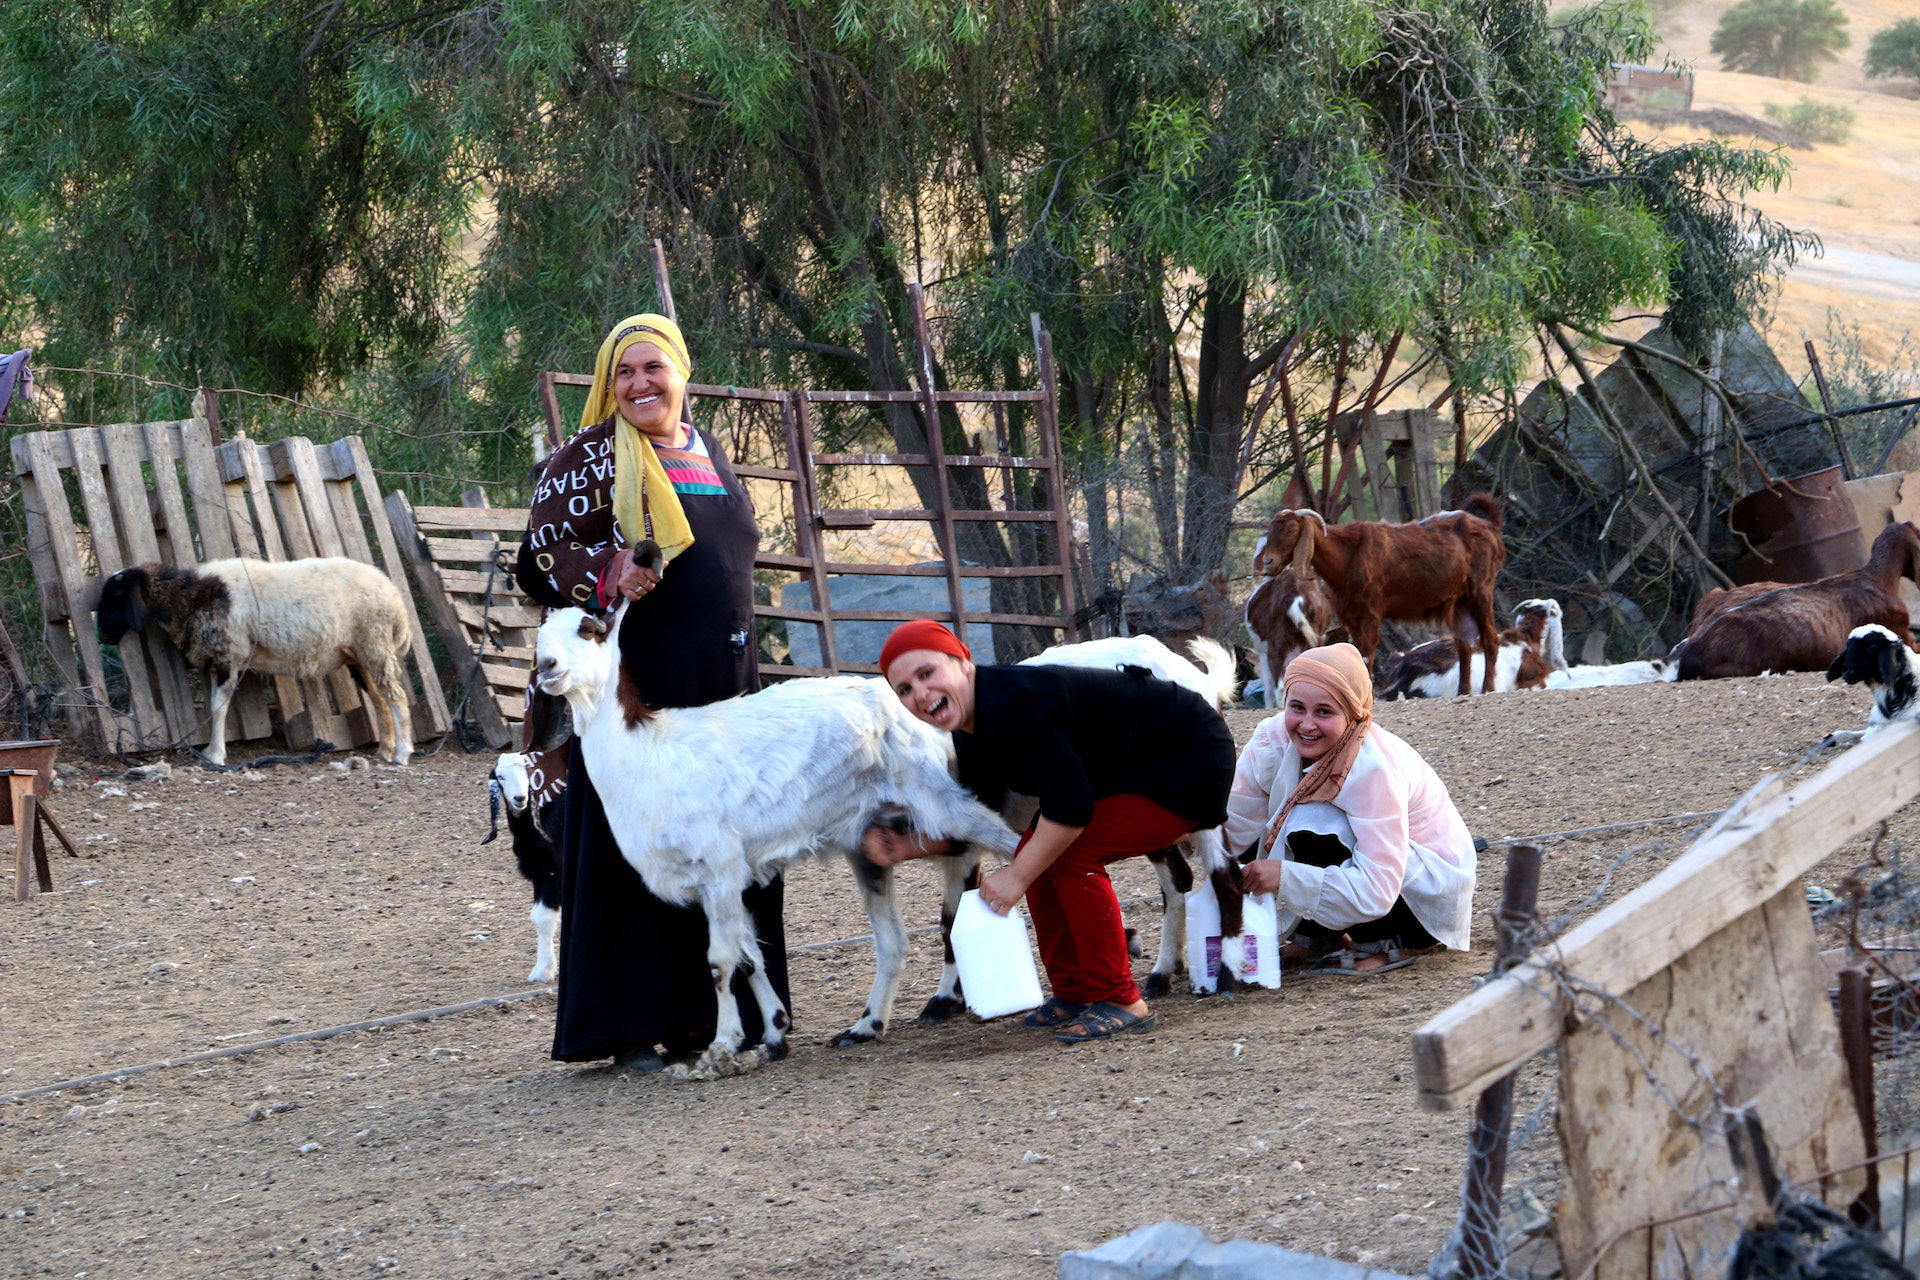 UM ELHERAN, ISRAEL, JUNE 4, 2016. Bedouin women milking goats at the Um Elheran village in the Negev Desert. 06/03/2016. Photo by Donna M. Airoldi